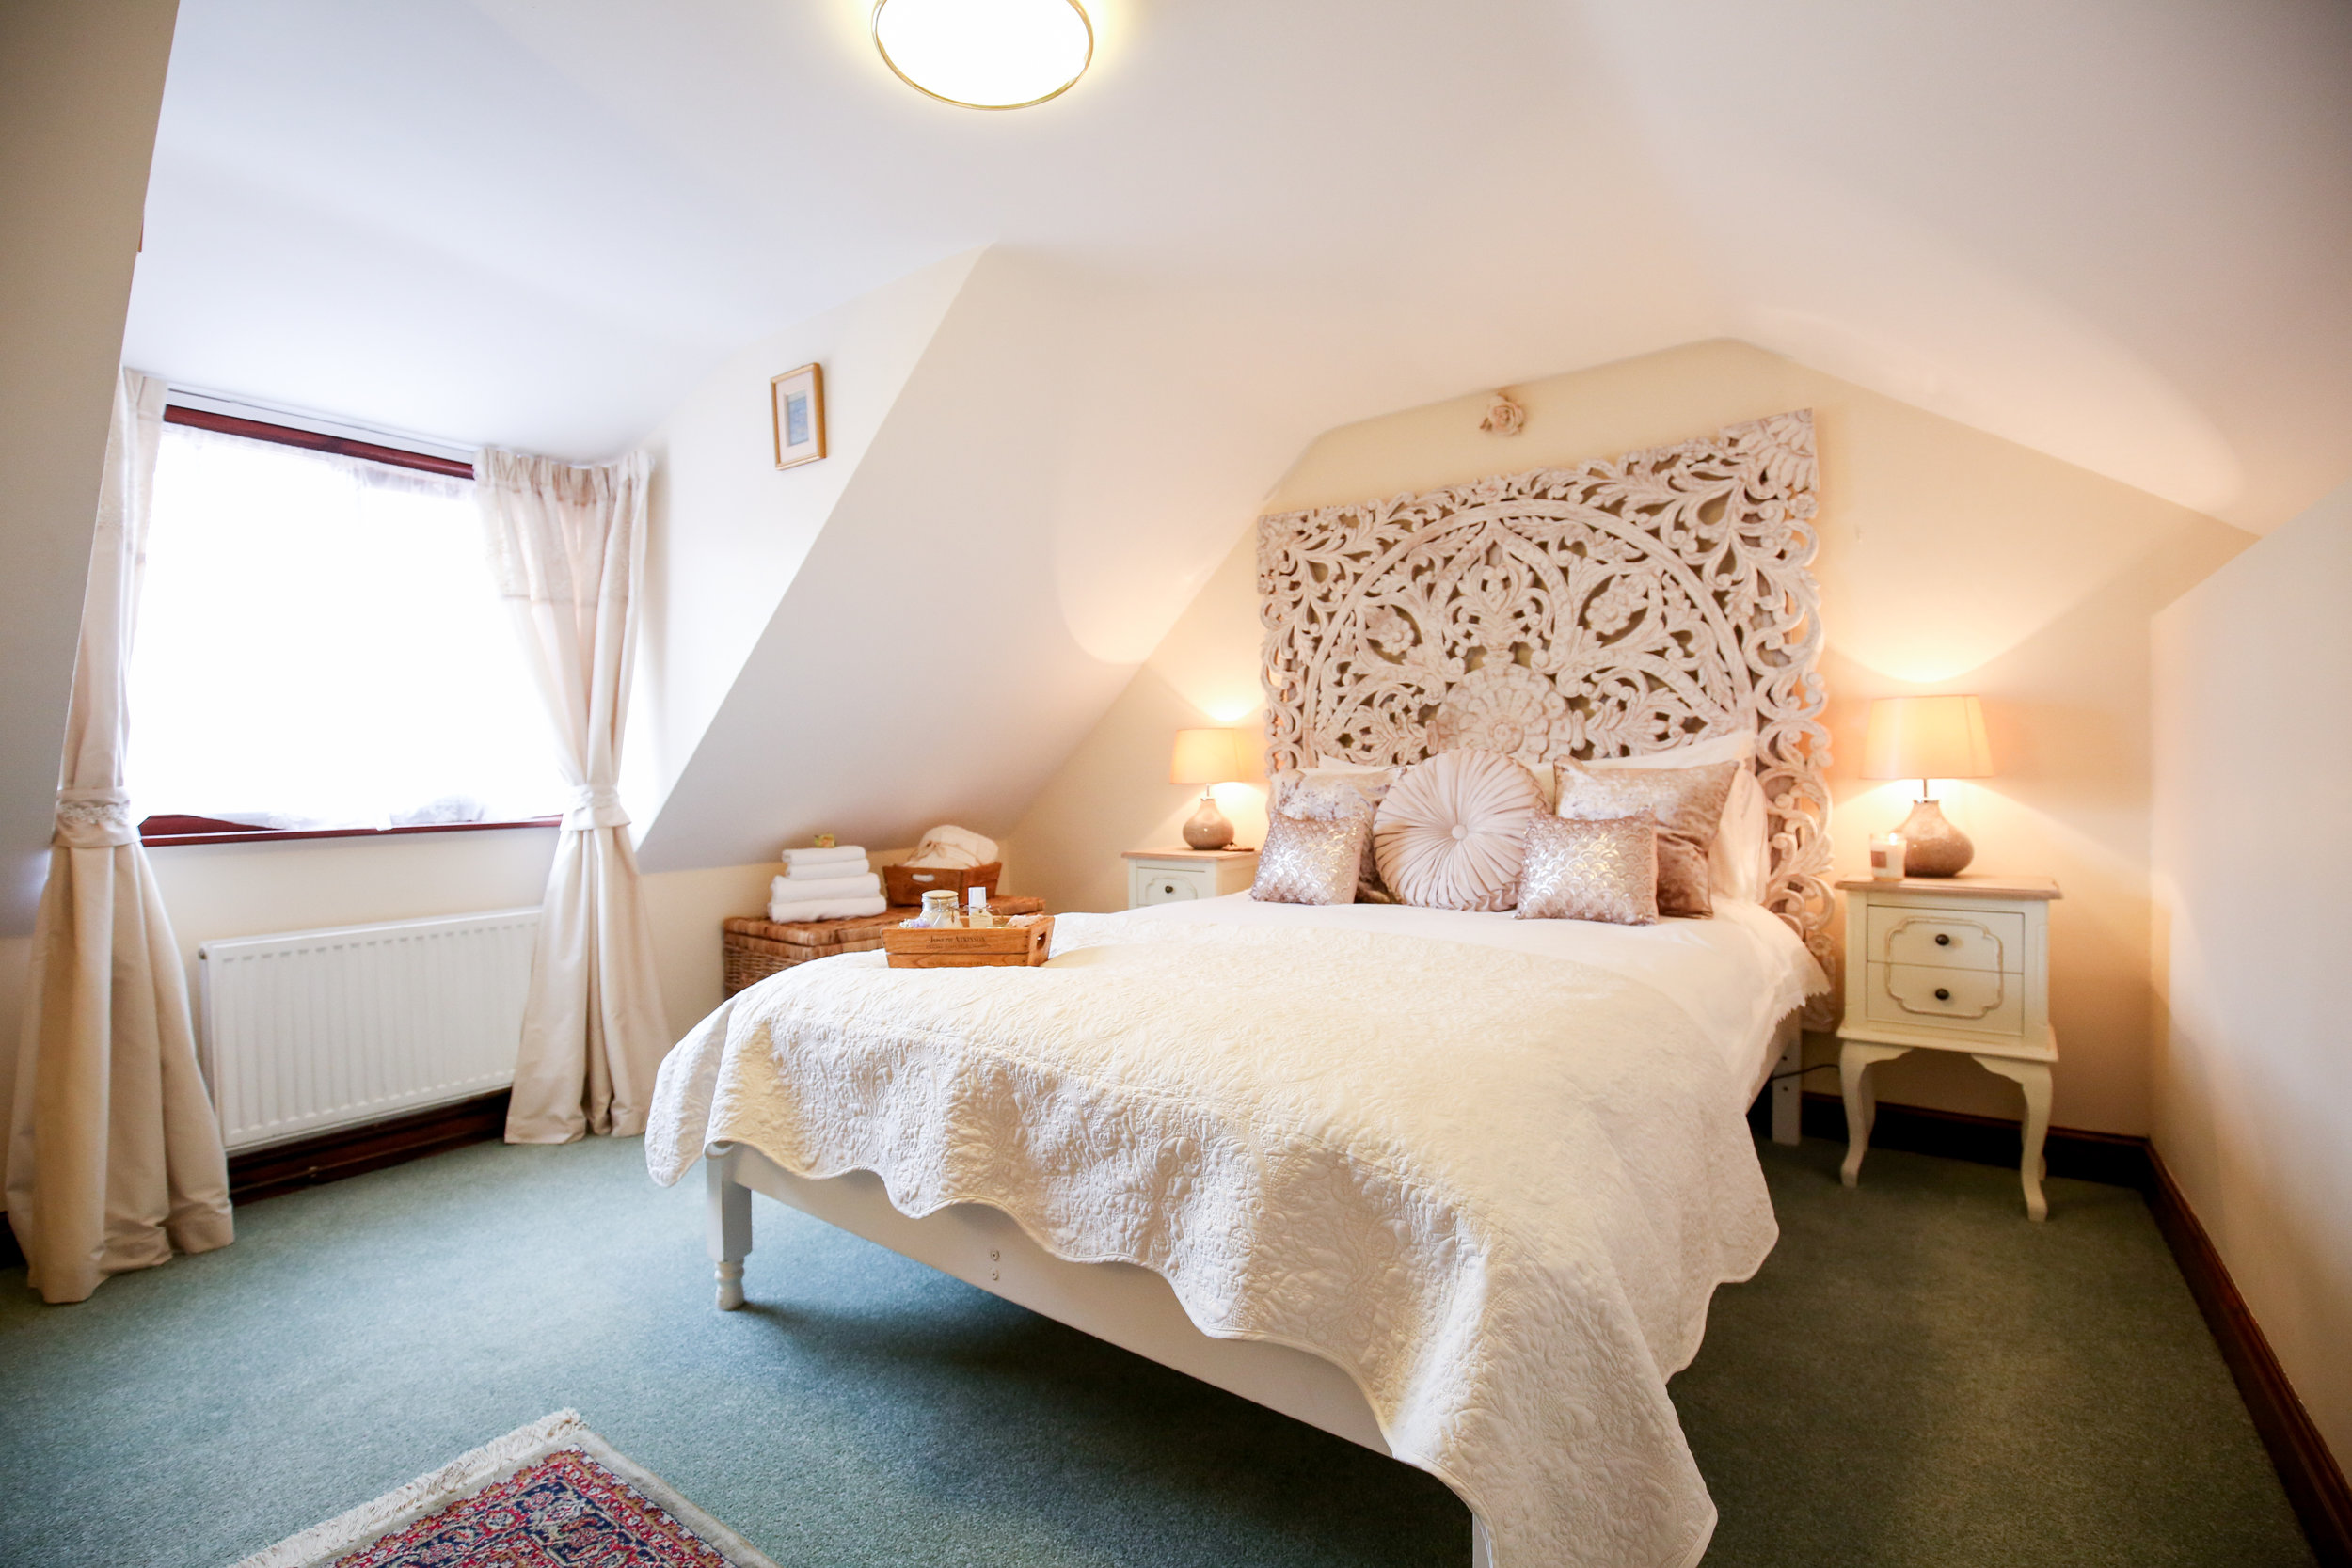 The Dove Loft - The Dove Loft is our signature suite situated in our light, bright attic. With a stunning, carved Moroccan double bed, snug lounge area and contemporary style slipper bath, this dreamy space is the perfect romantic retreat.